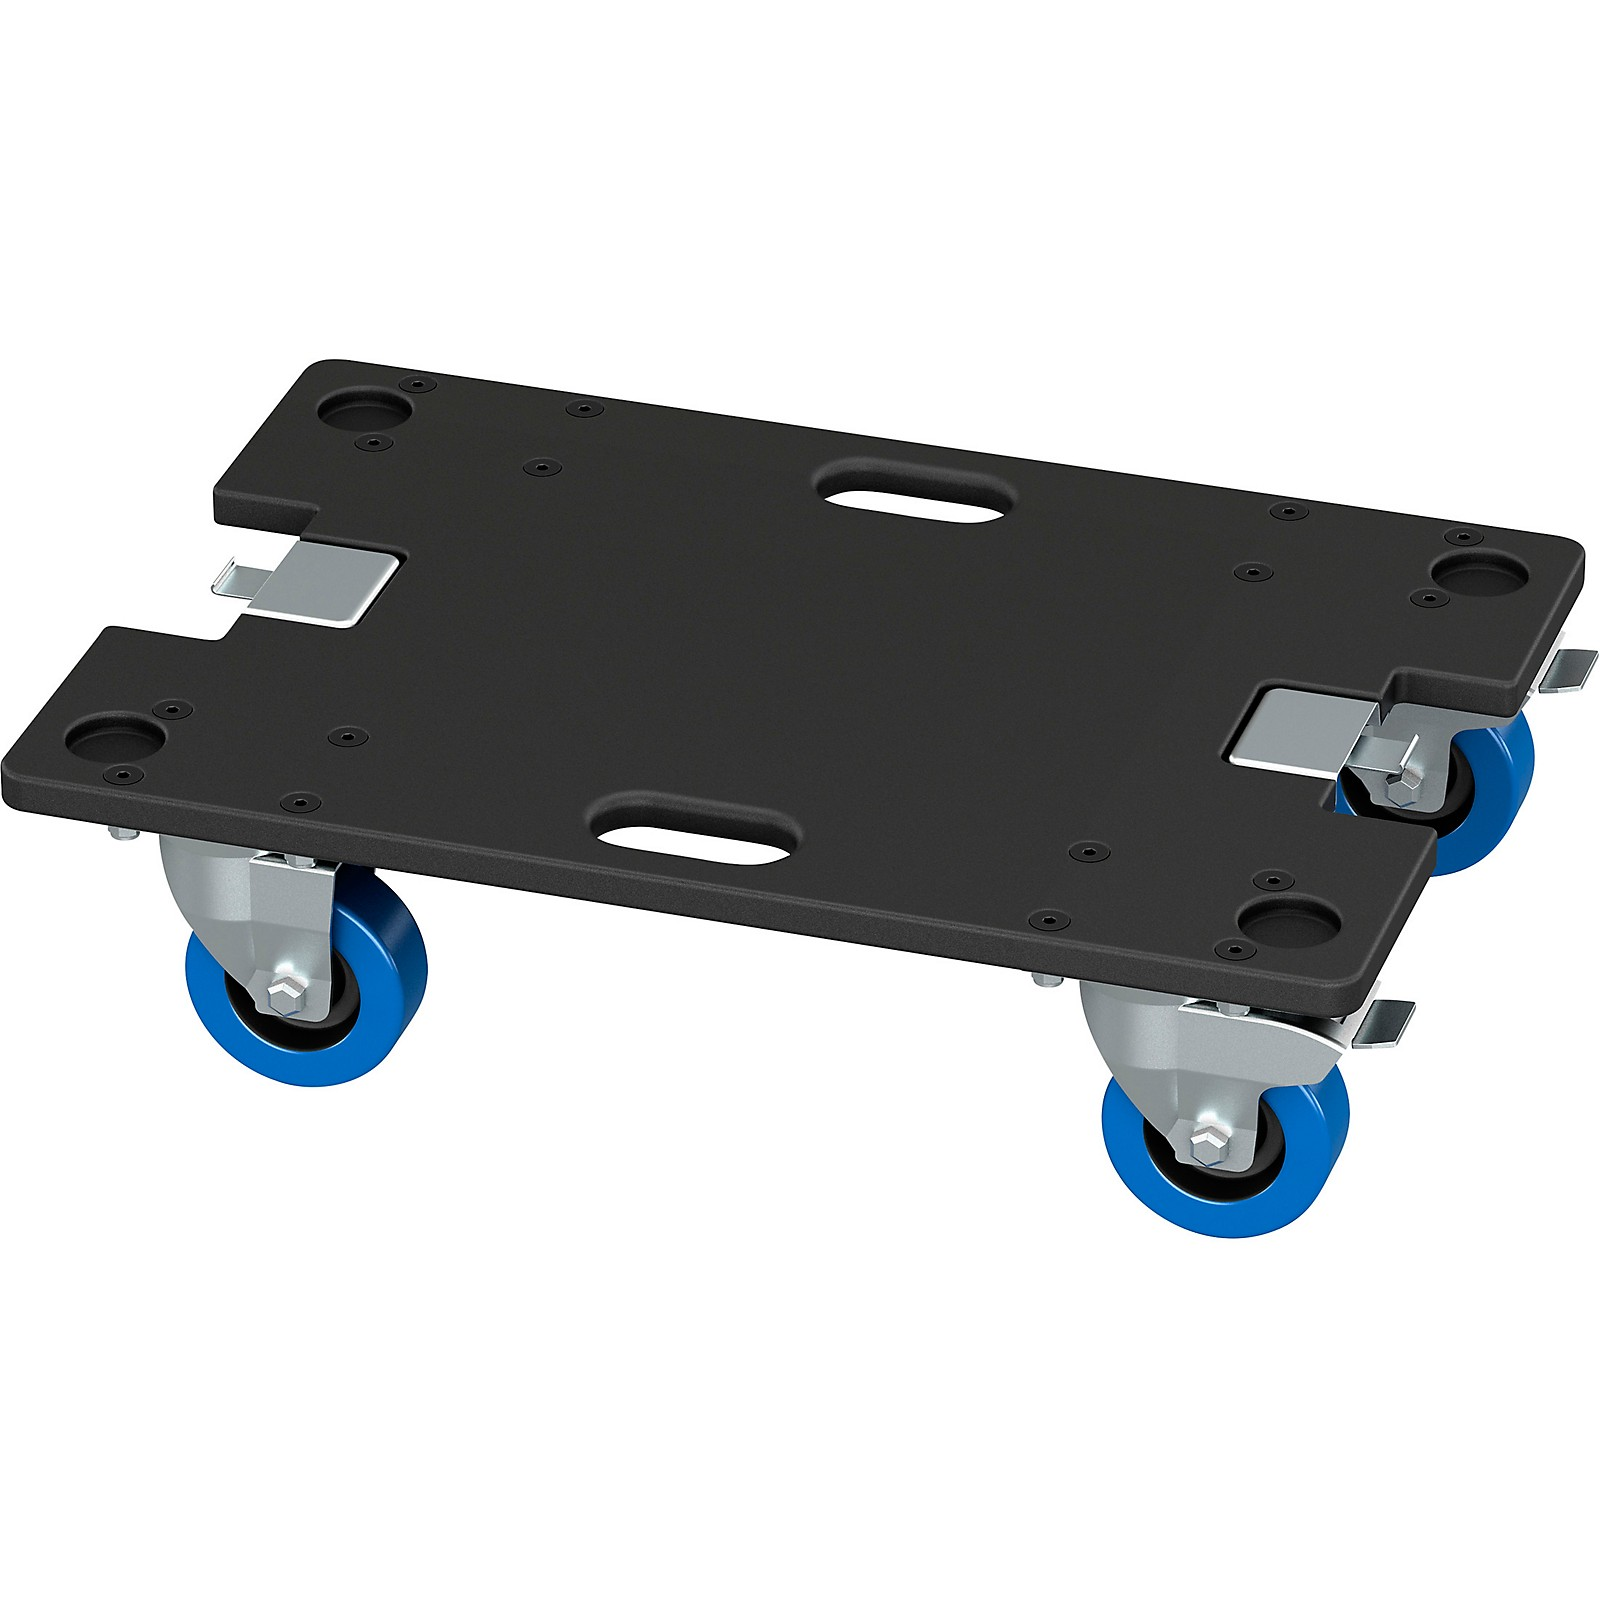 Turbosound iP3000-WHB Rolling Wheel Board for iP3000 Subwoofer